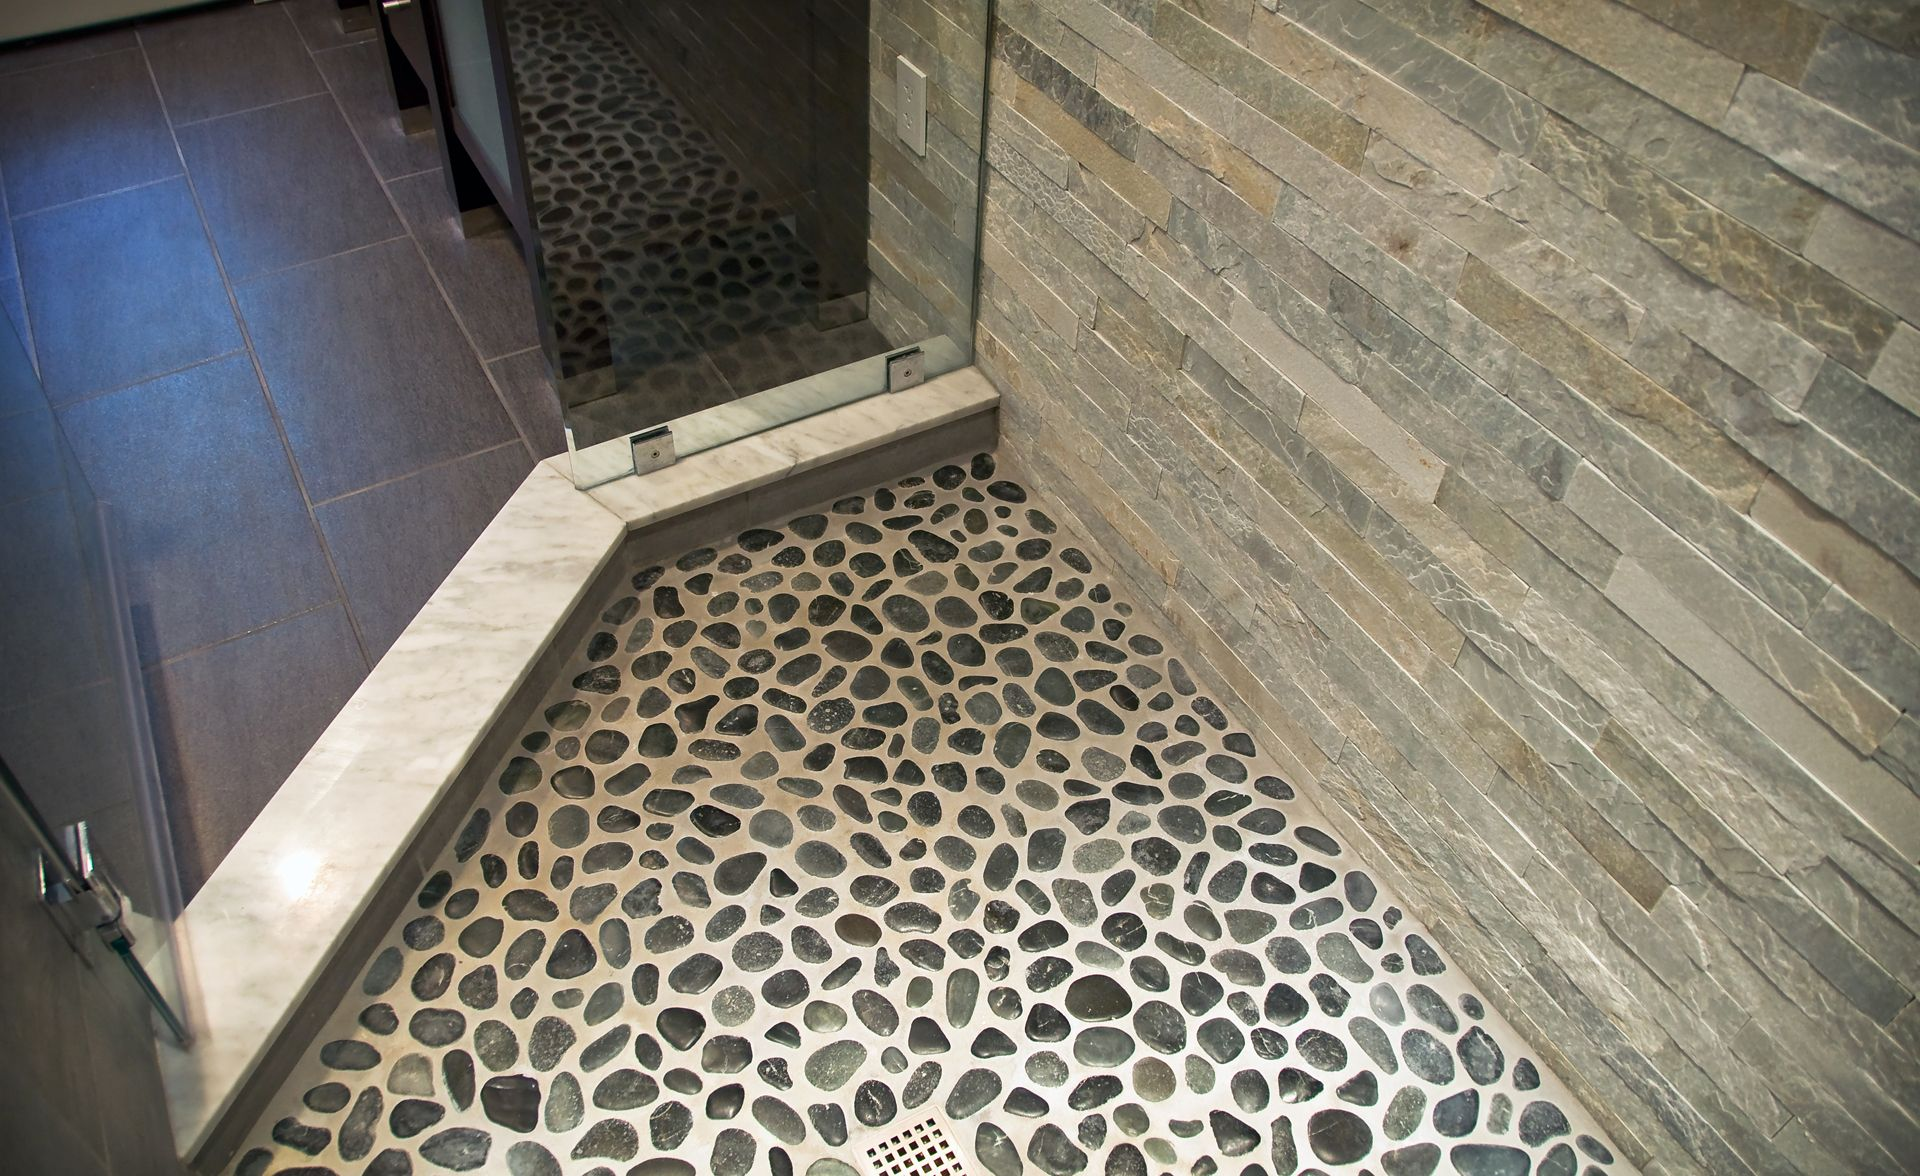 Rock Looking Floor Tile   Our Shower Floor Is Covered In Smooth Black River  Rocks. They Feel ...   Pool Bath   Pinterest   Stone Tile Flooring, Stone  Tiles ...